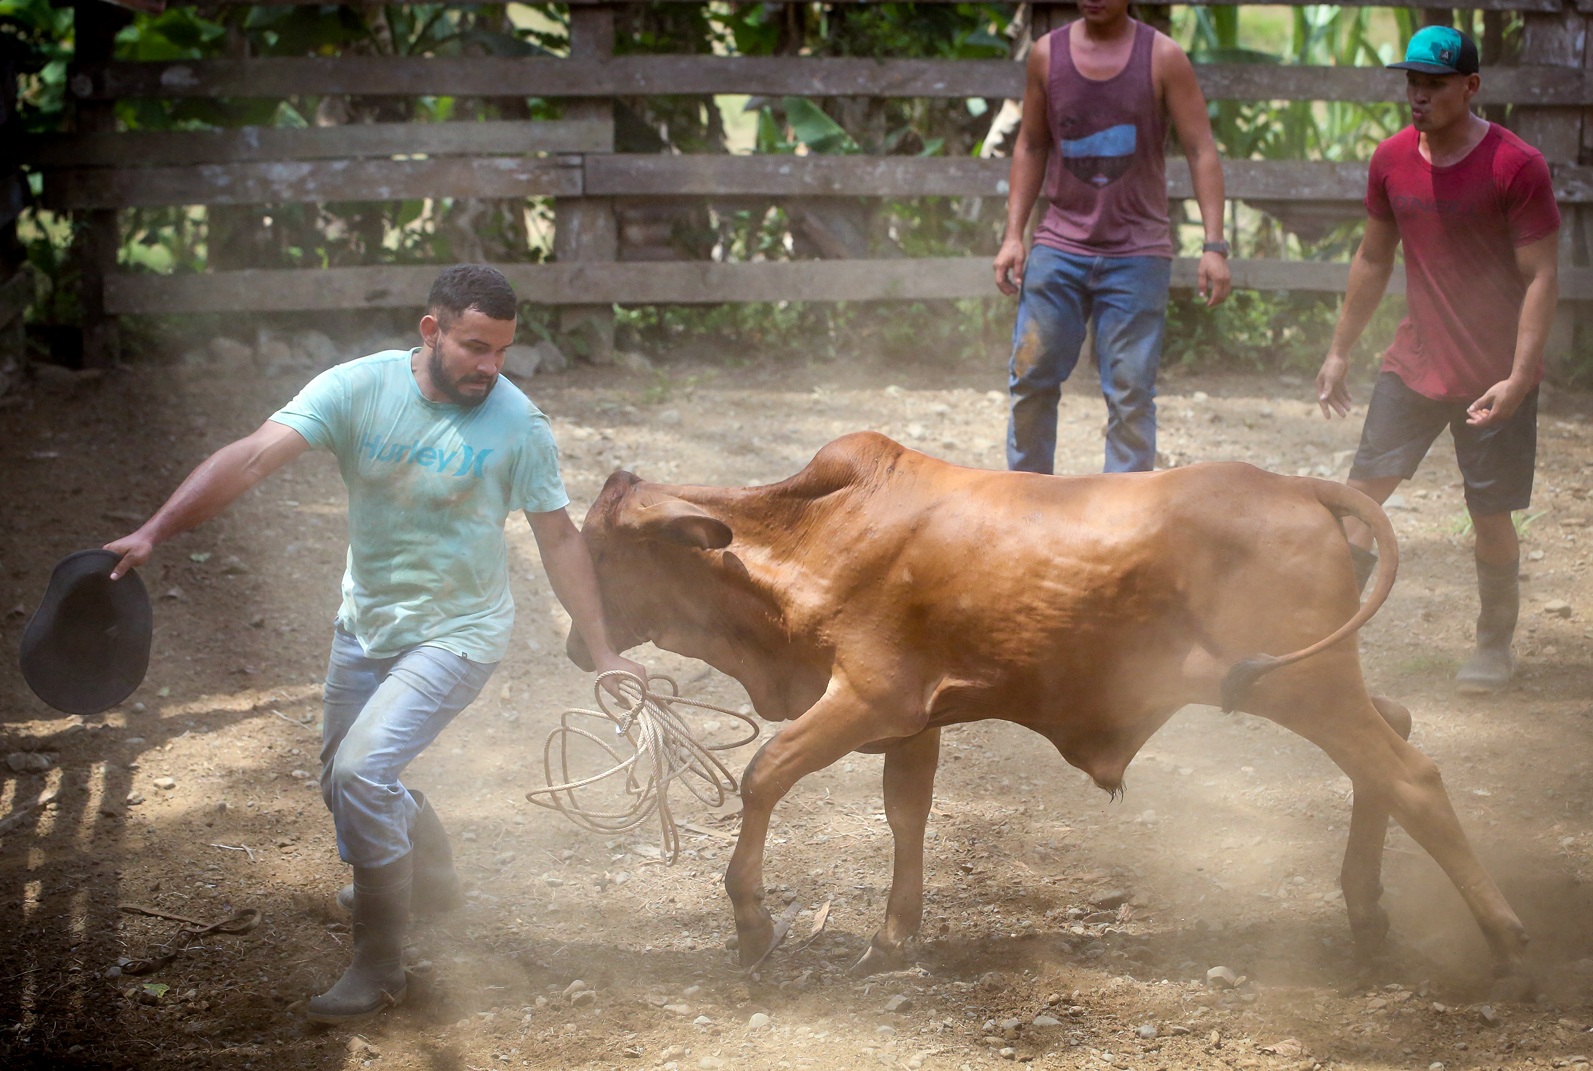 A Tico finds himself on the receiving end of a charging bull.